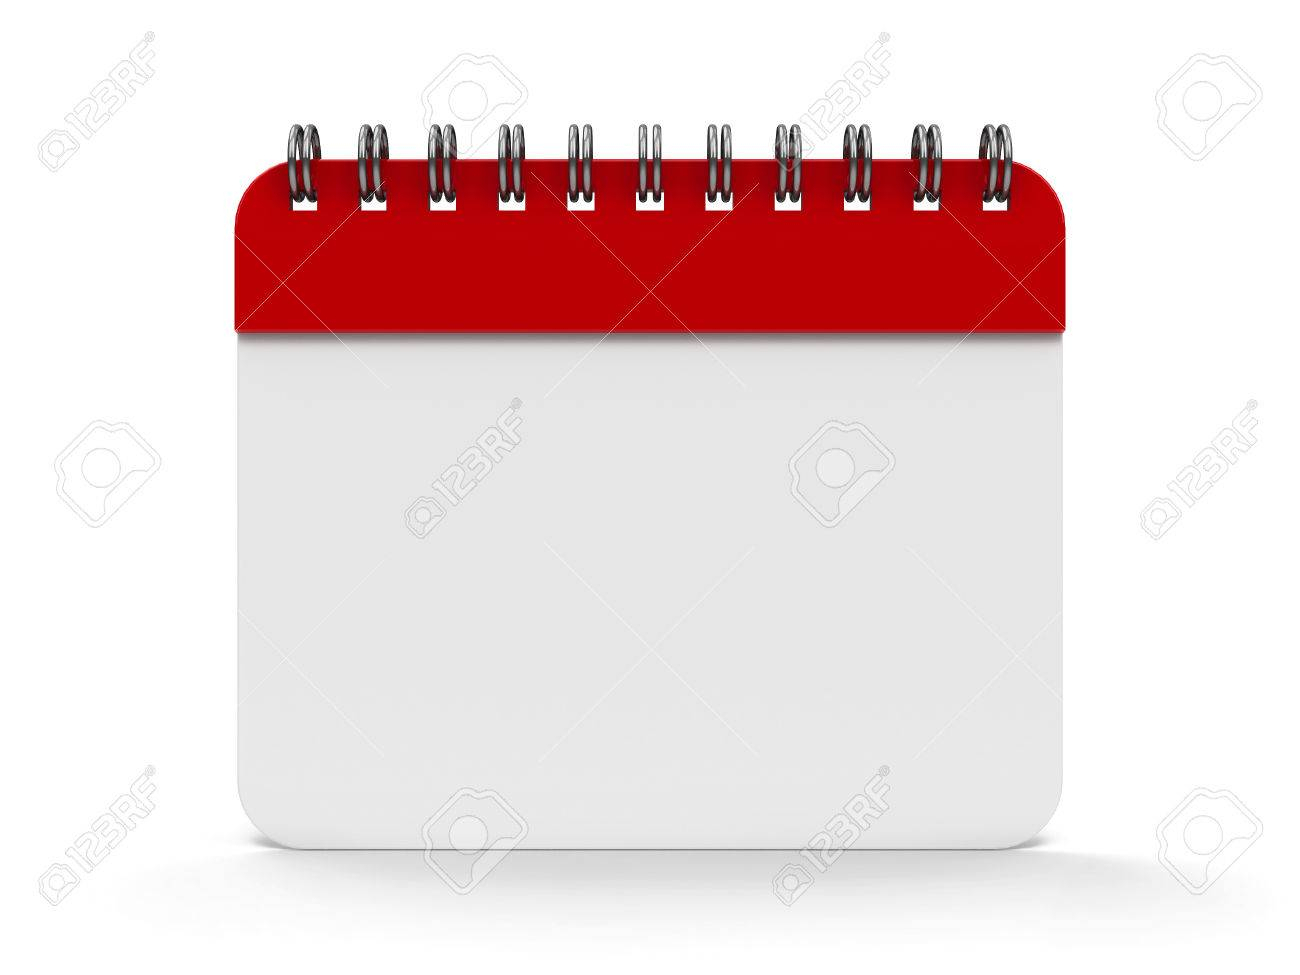 Blank Calendar Icon With Spiral, Threedimensional Rendering intended for Blank Calendar Icon